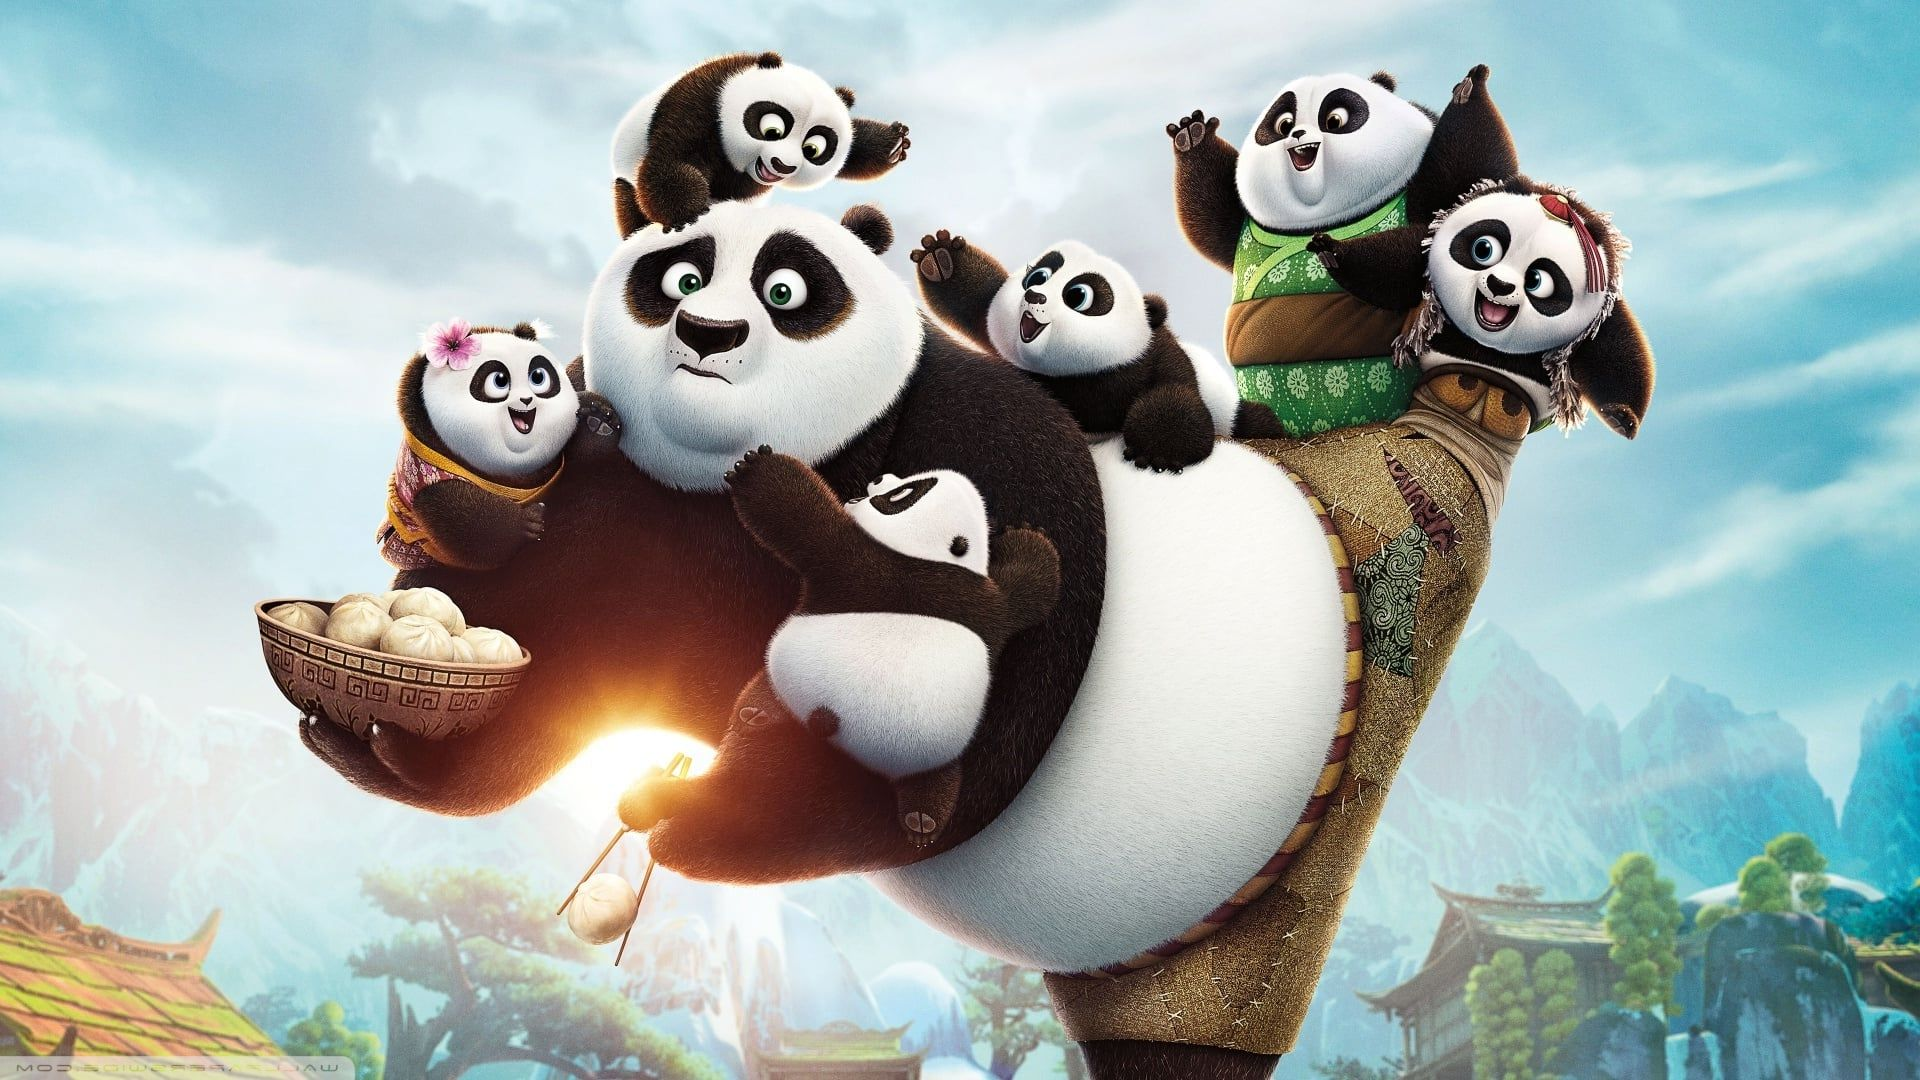 kung fu panda hd wallpapers backgrounds wallpaper | wallpapers